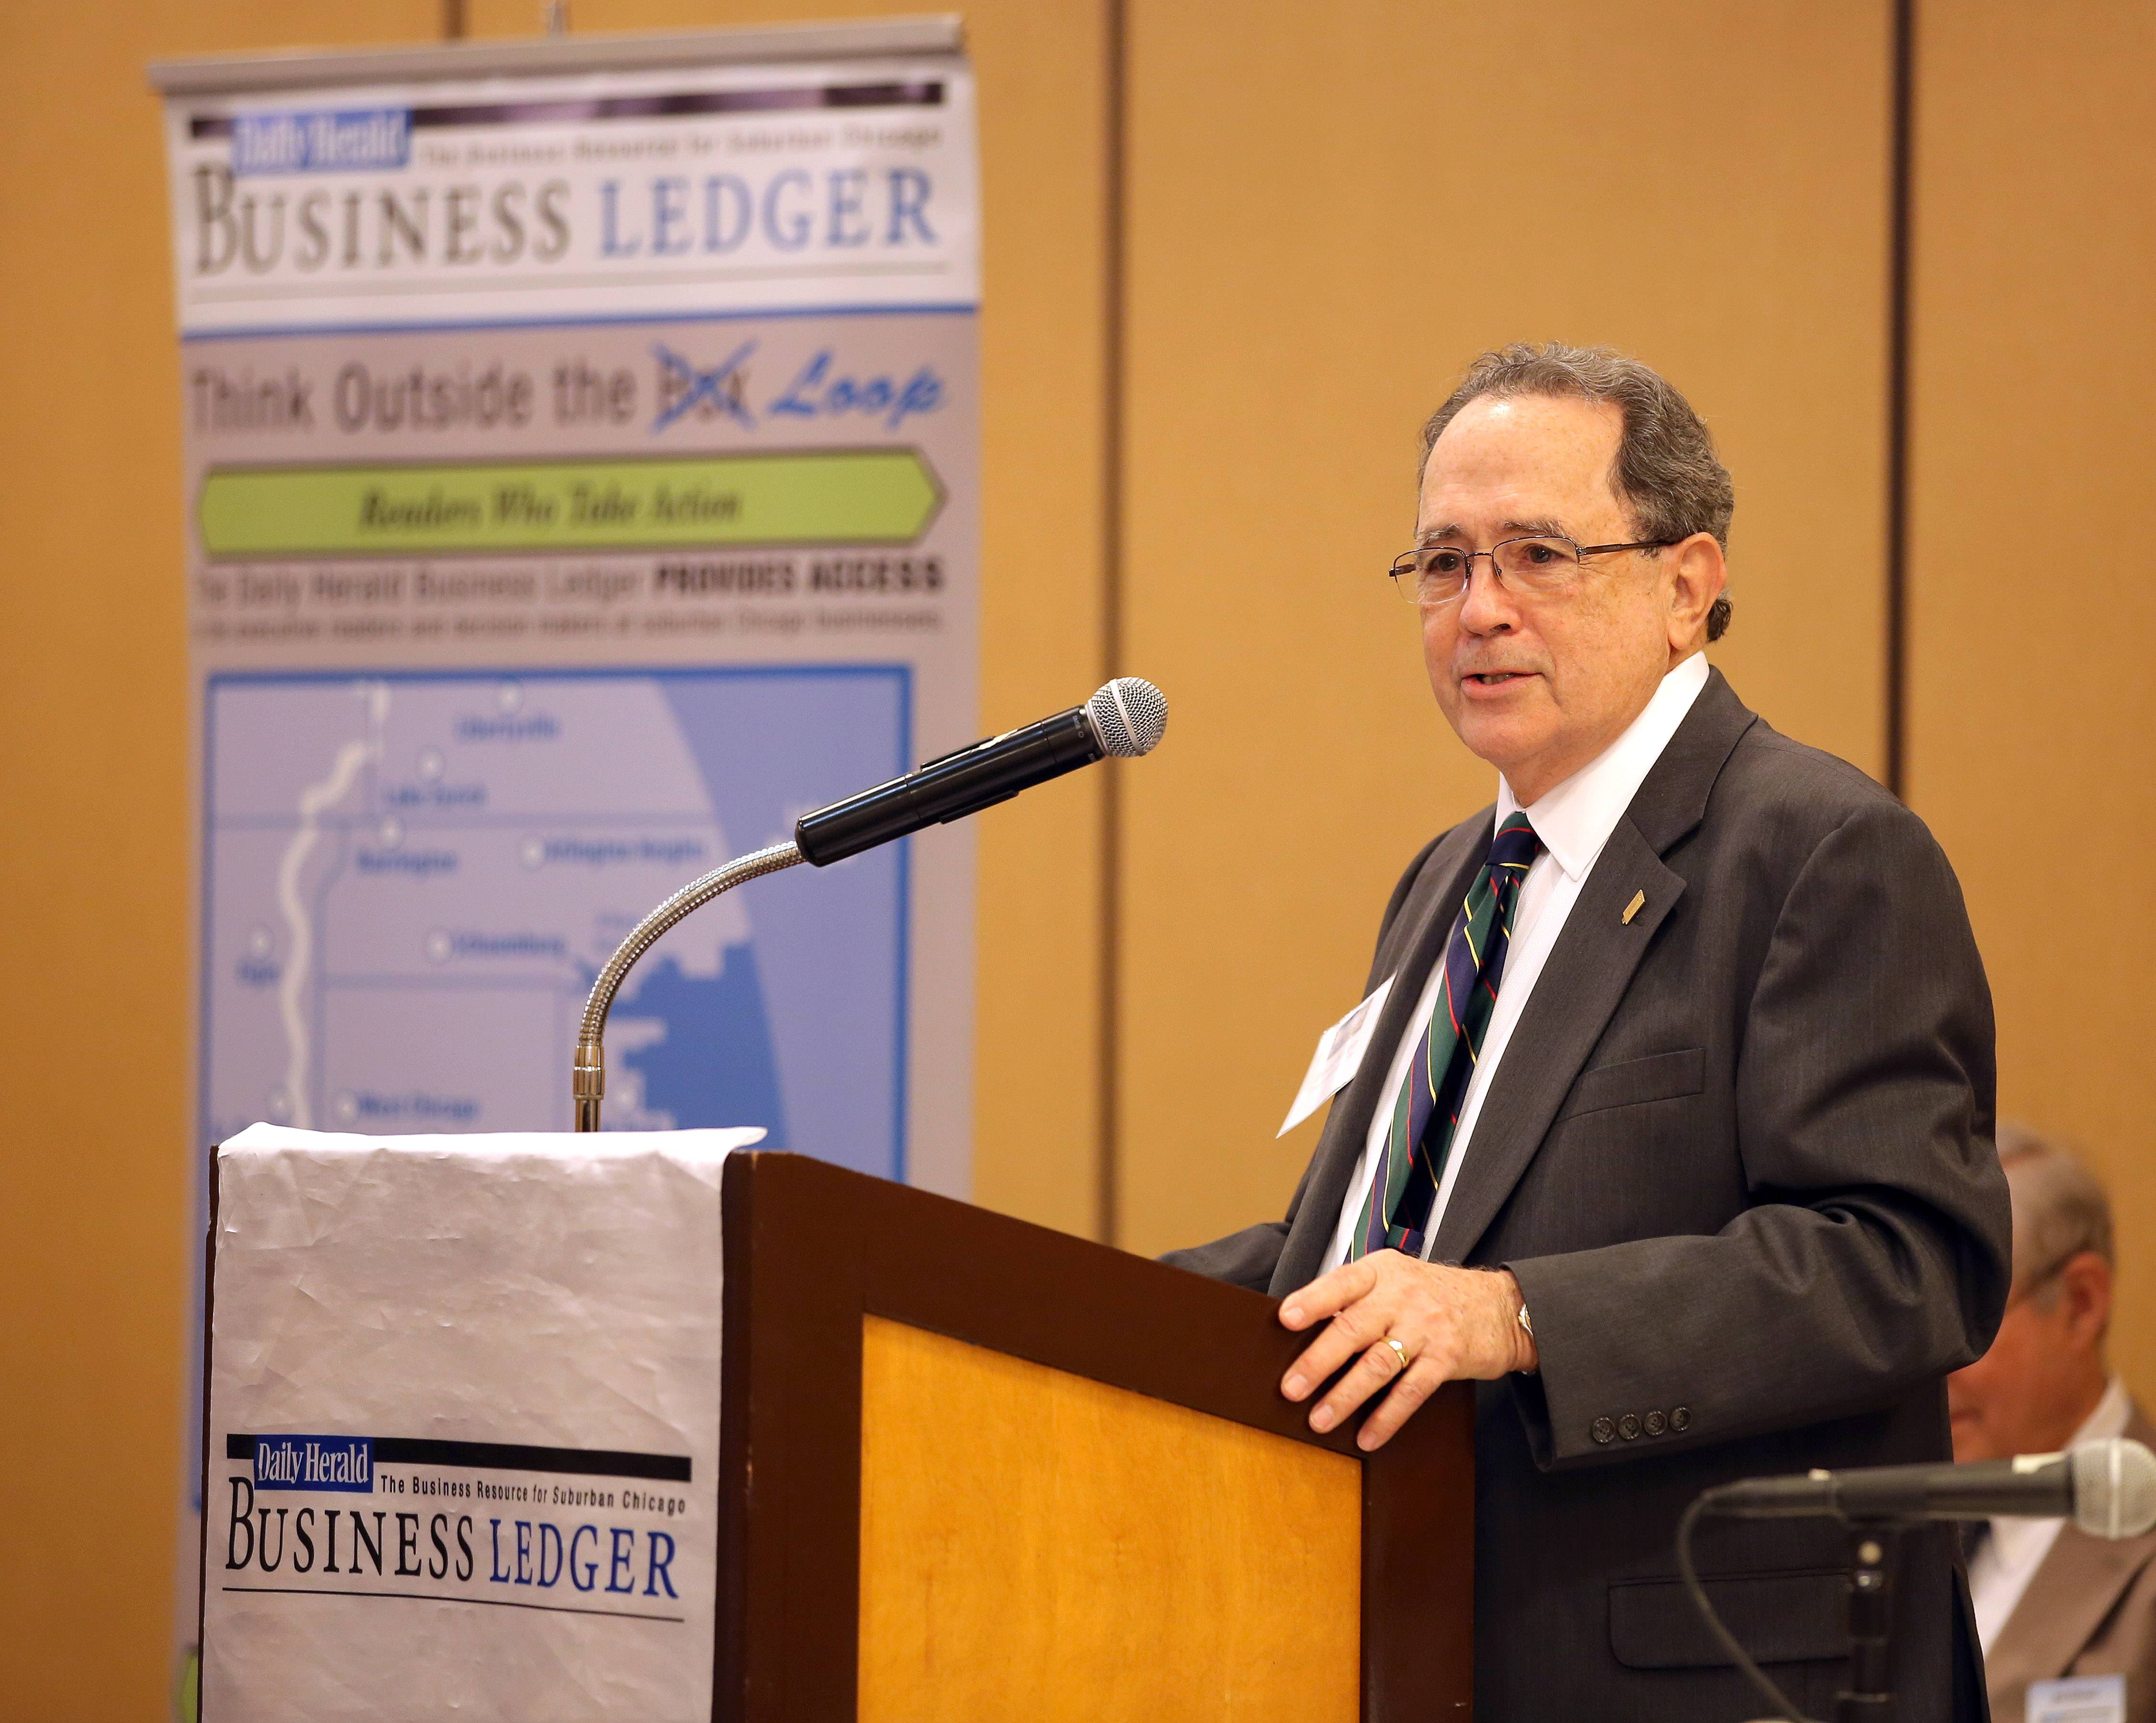 Panelist Trevor Morgan, president of Prairie Business Credit Inc., speaks during the Business Ledger's Newsmakers Forum on banking and finance at the DoubleTree Hotel in Arlington Heights Thursday.